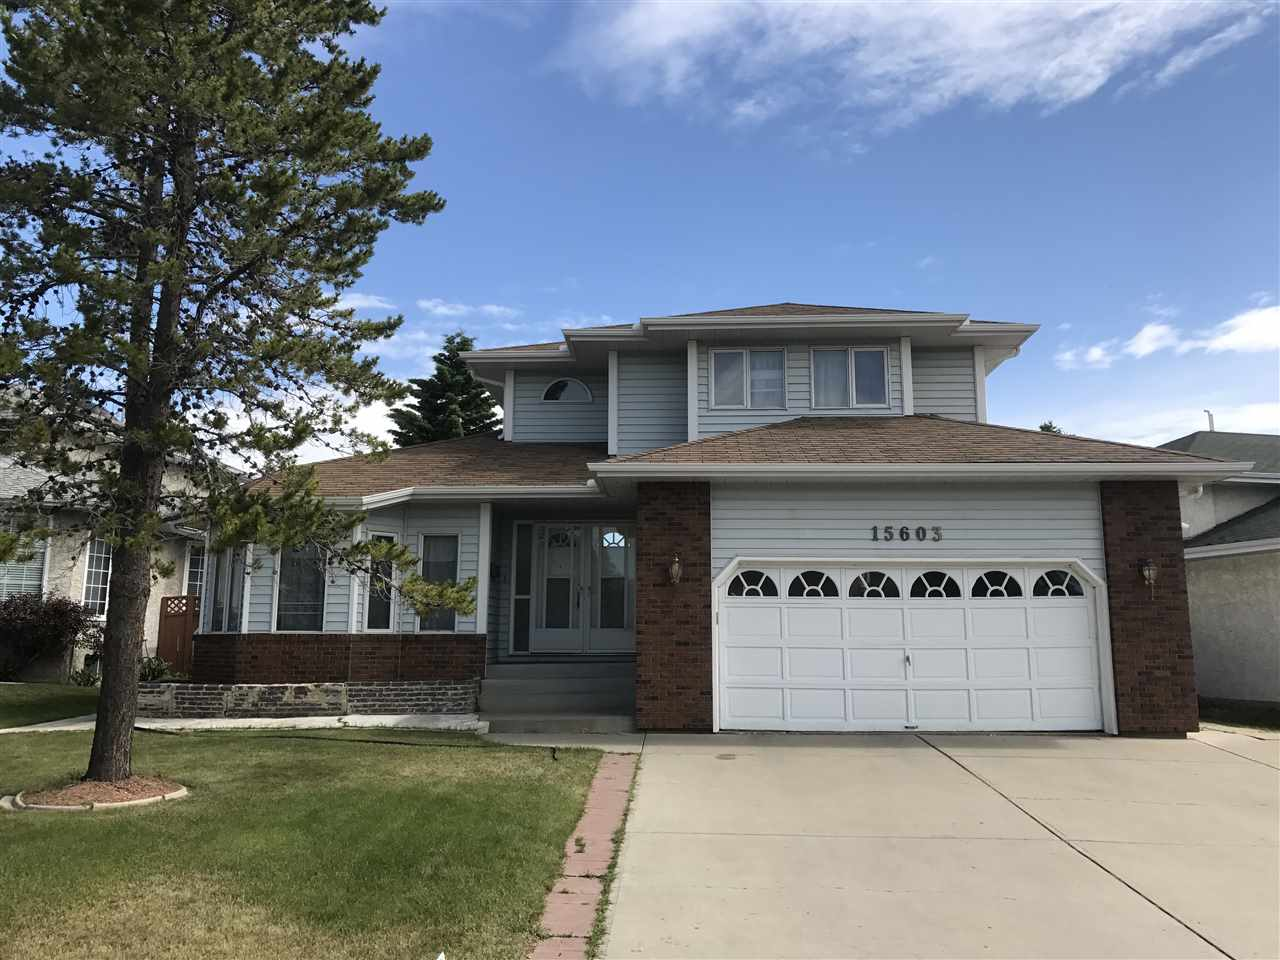 Main Photo: 15603 64 Street in Edmonton: Zone 03 House for sale : MLS® # E4070056